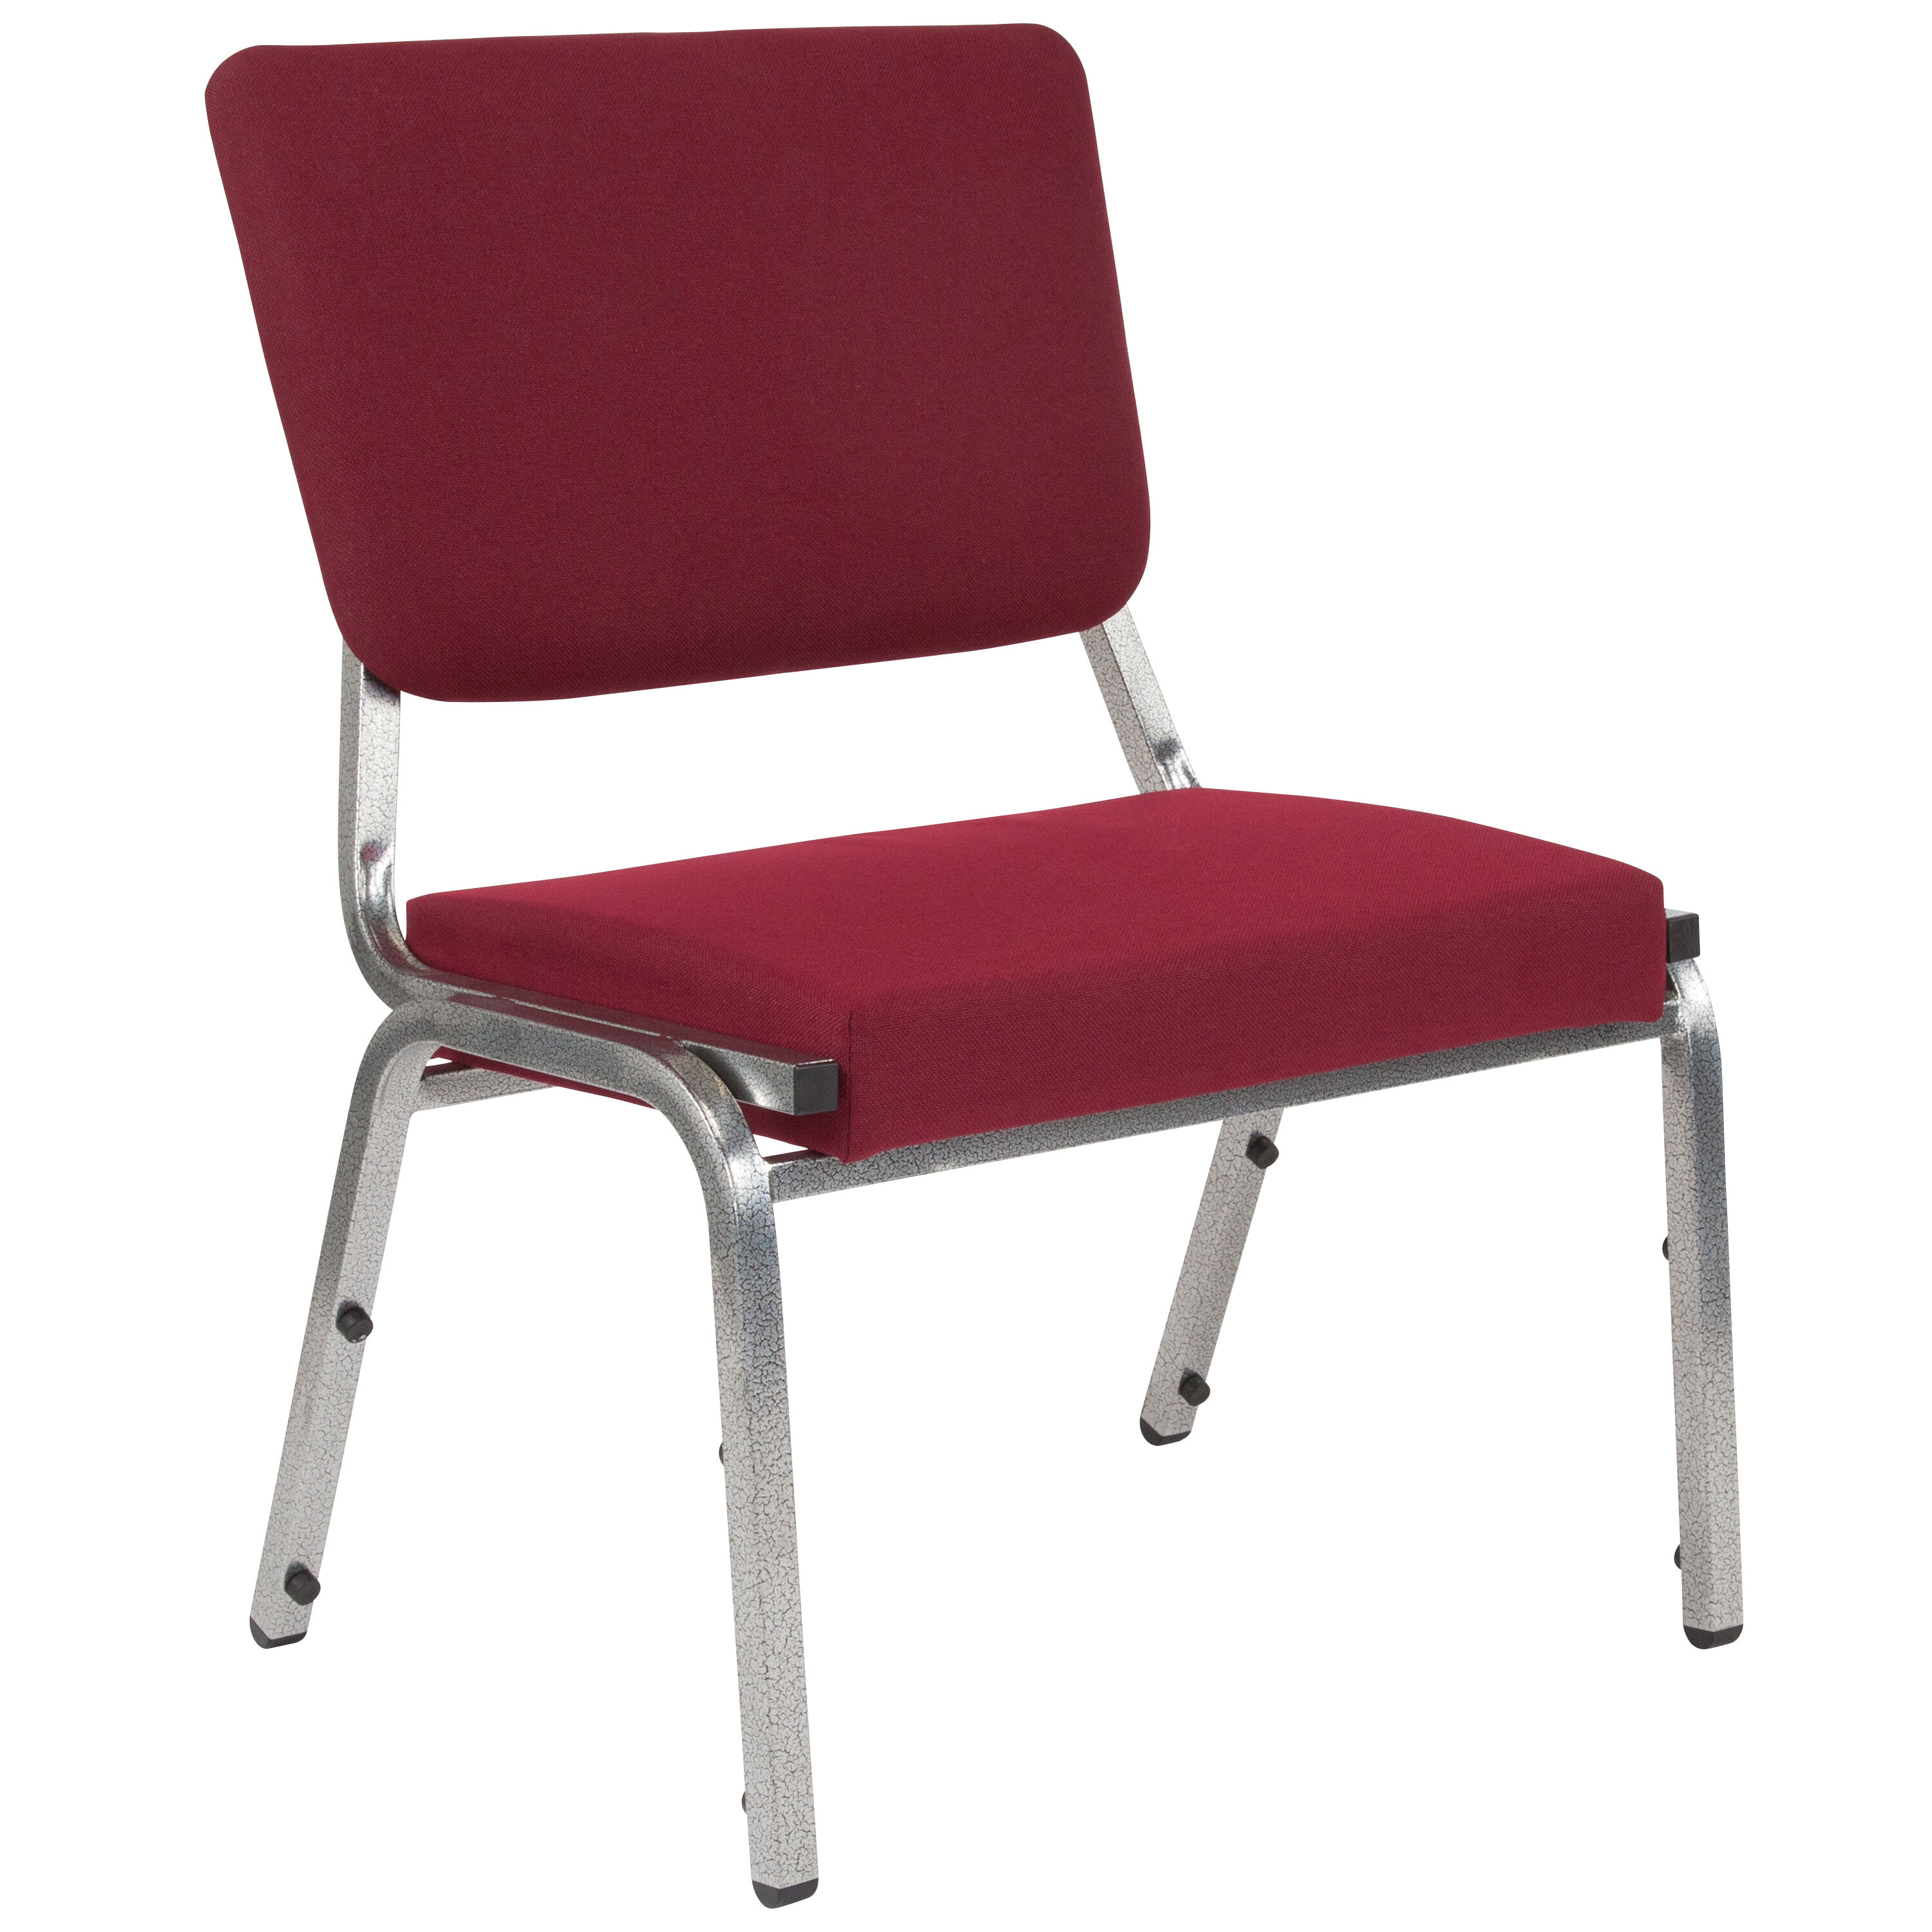 Rated Burgundy Antimicrobial Fabric Bariatric Medical Reception Chair with 3  sc 1 st  Biz Chair & Burgundy Bariatric Chair XU-DG-60442-660-2-BY-GG   Bizchair.com